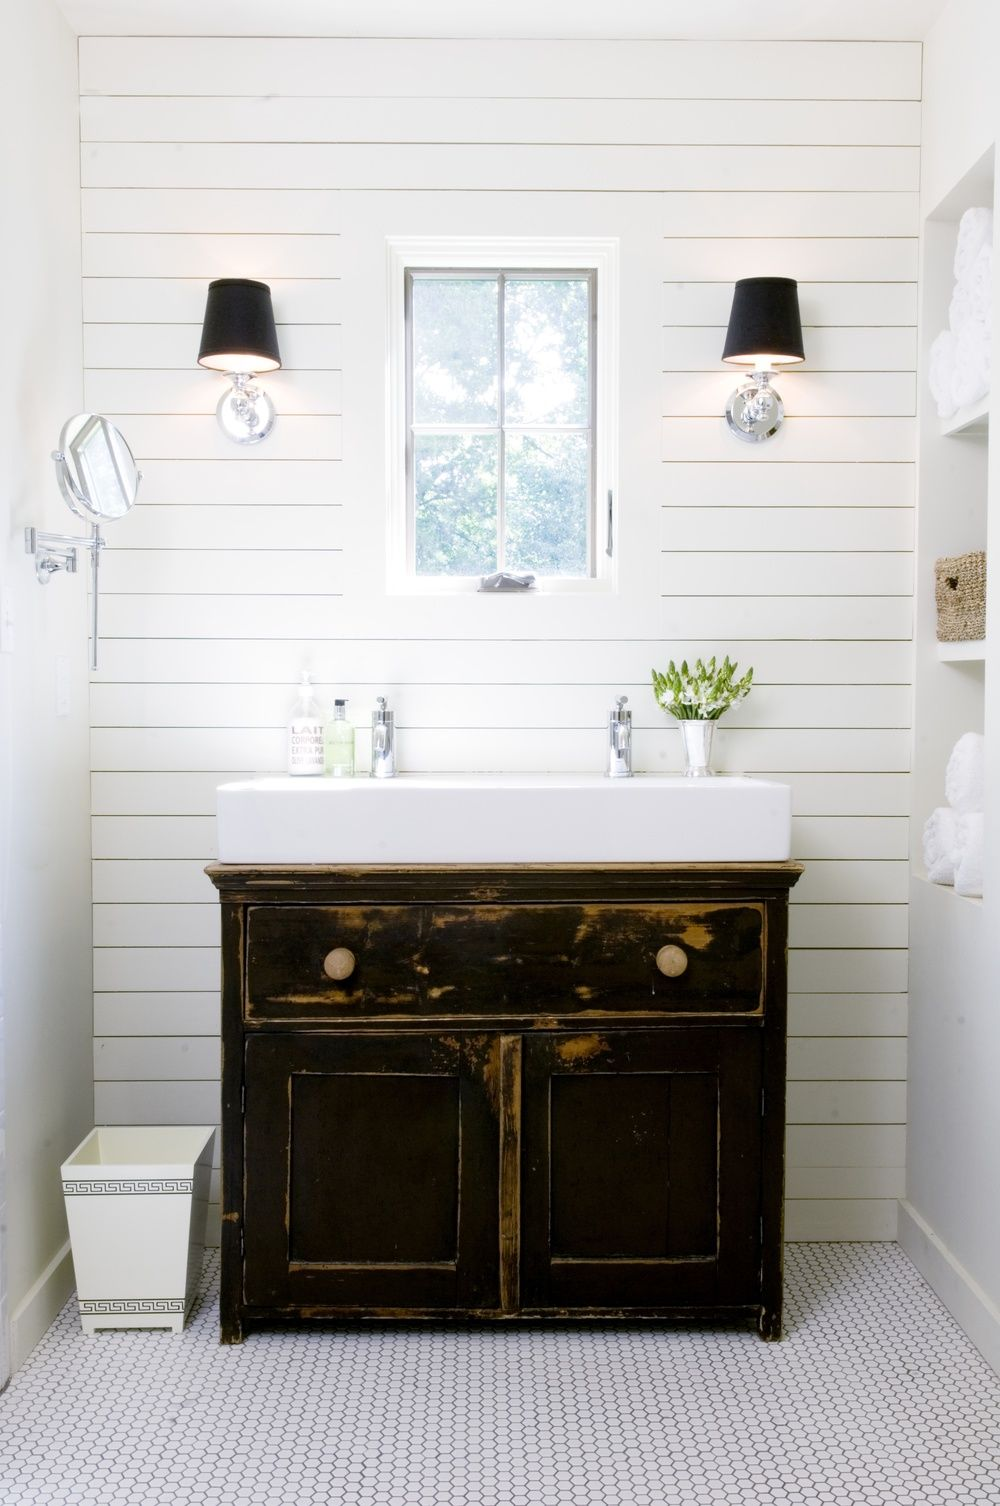 Plank walls in bathroom - Farmhouse Bathroom With White Plank Wall And Distressed Black Vanity Designed By David Anderson Architect